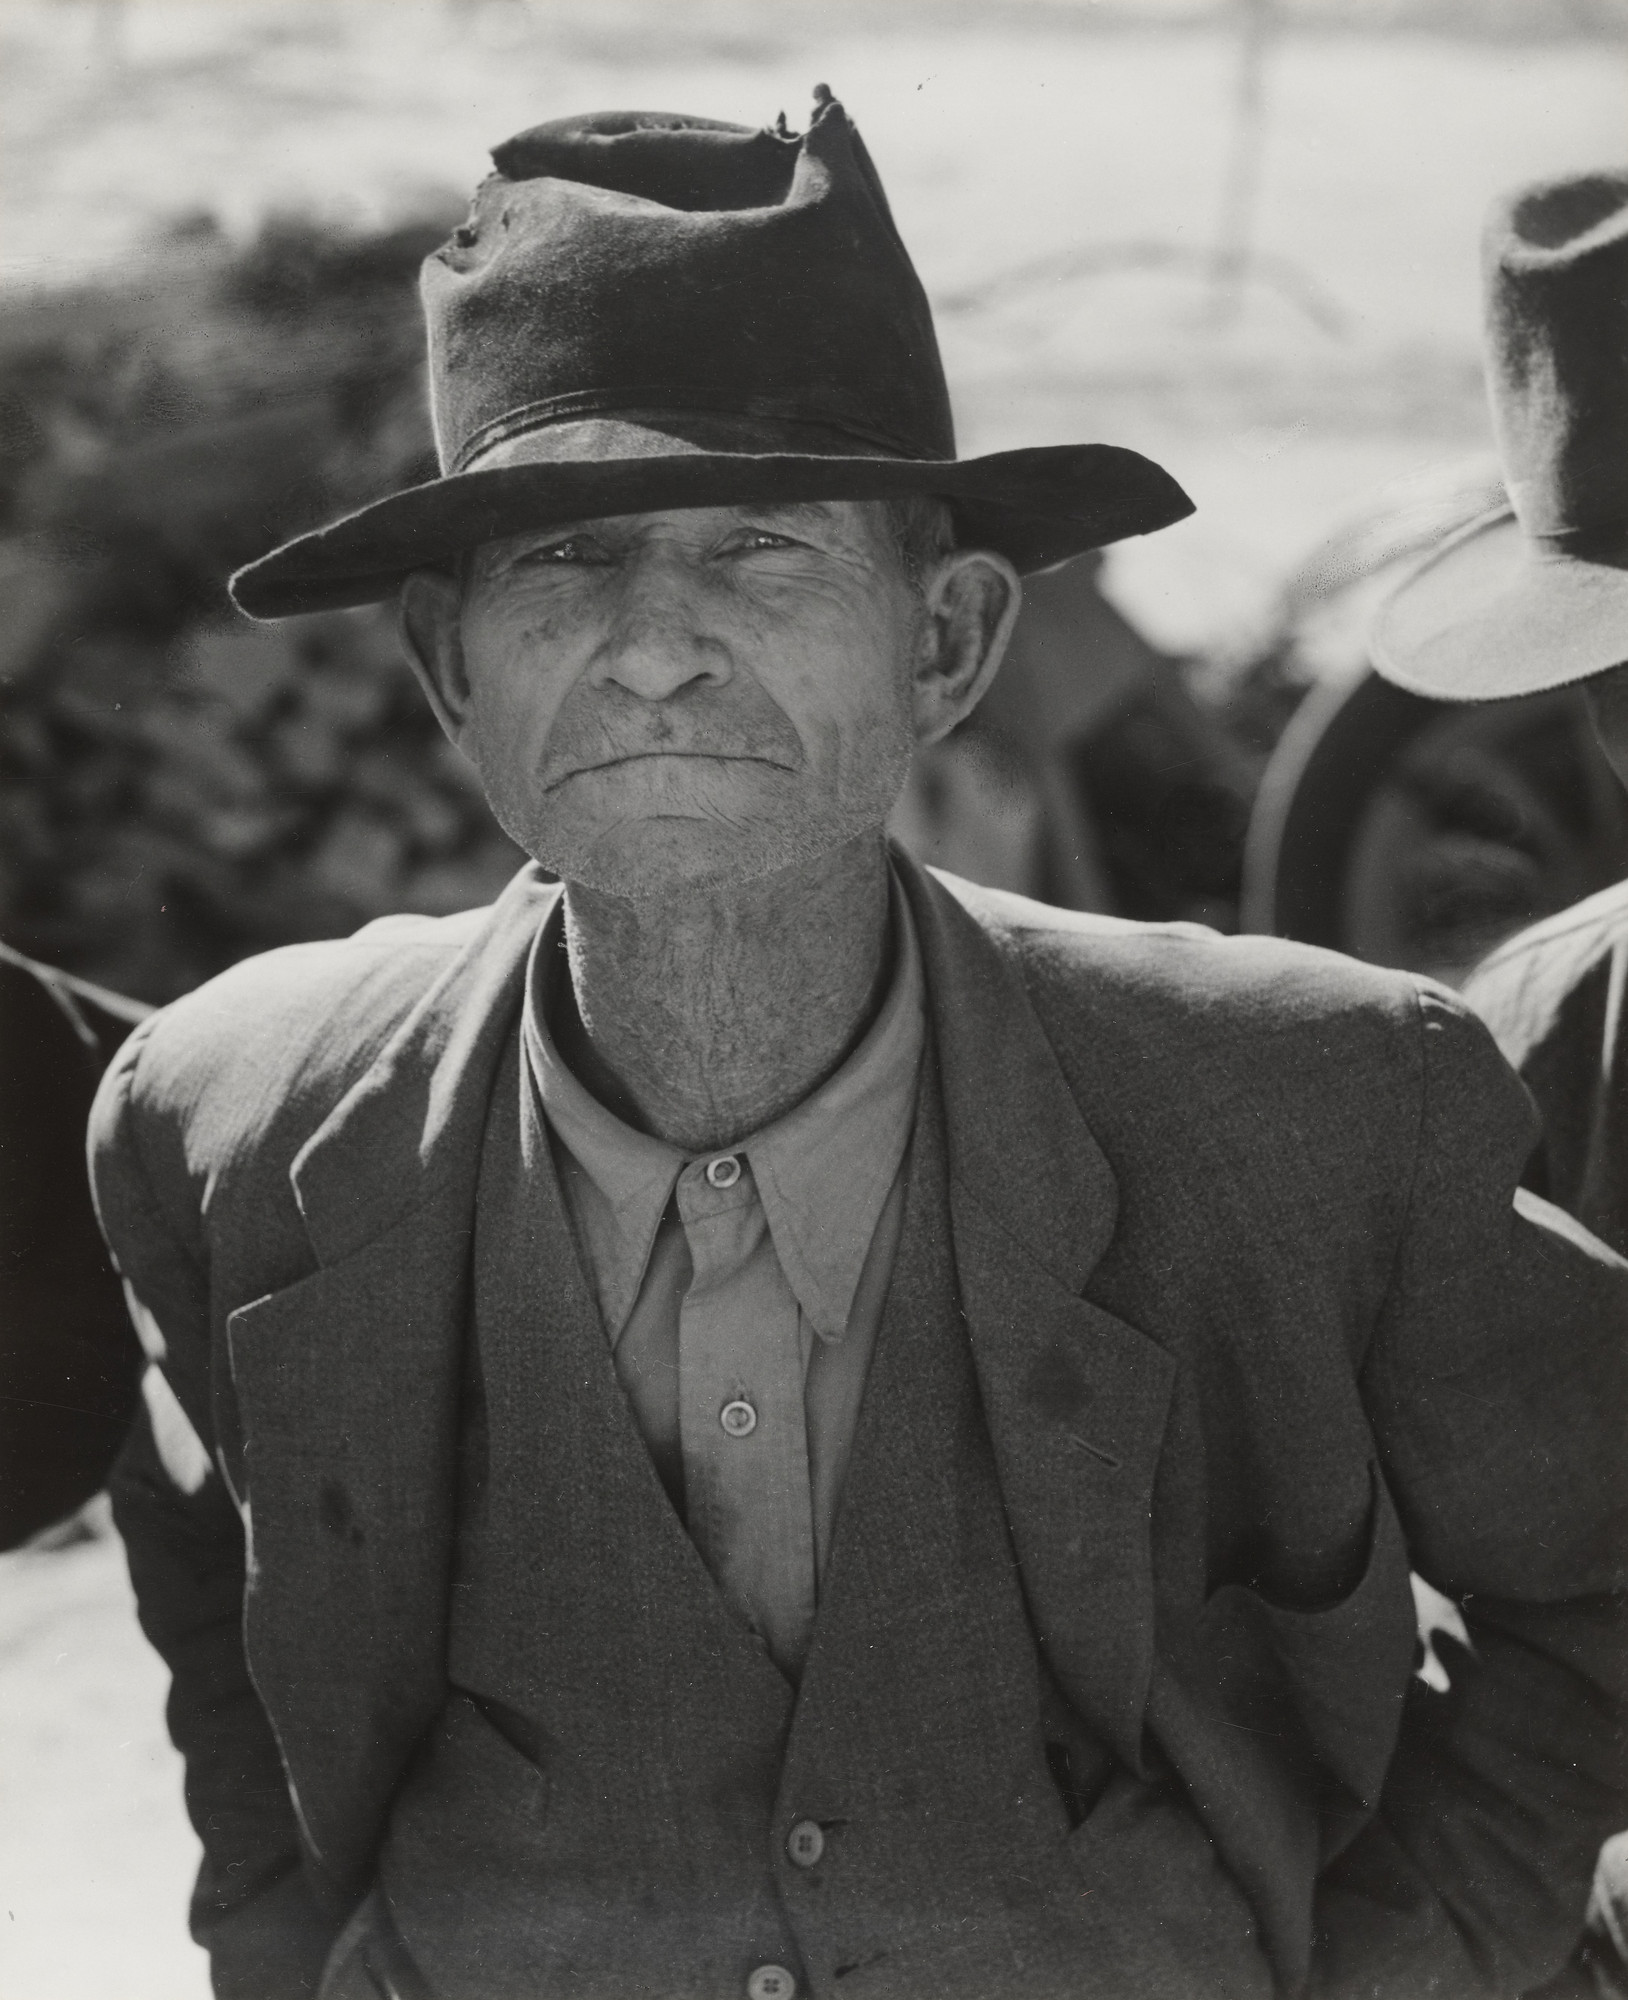 Dorothea Lange. Ex-Tenant Farmer on Relief Grant in the Imperial Valley, California. March 1937